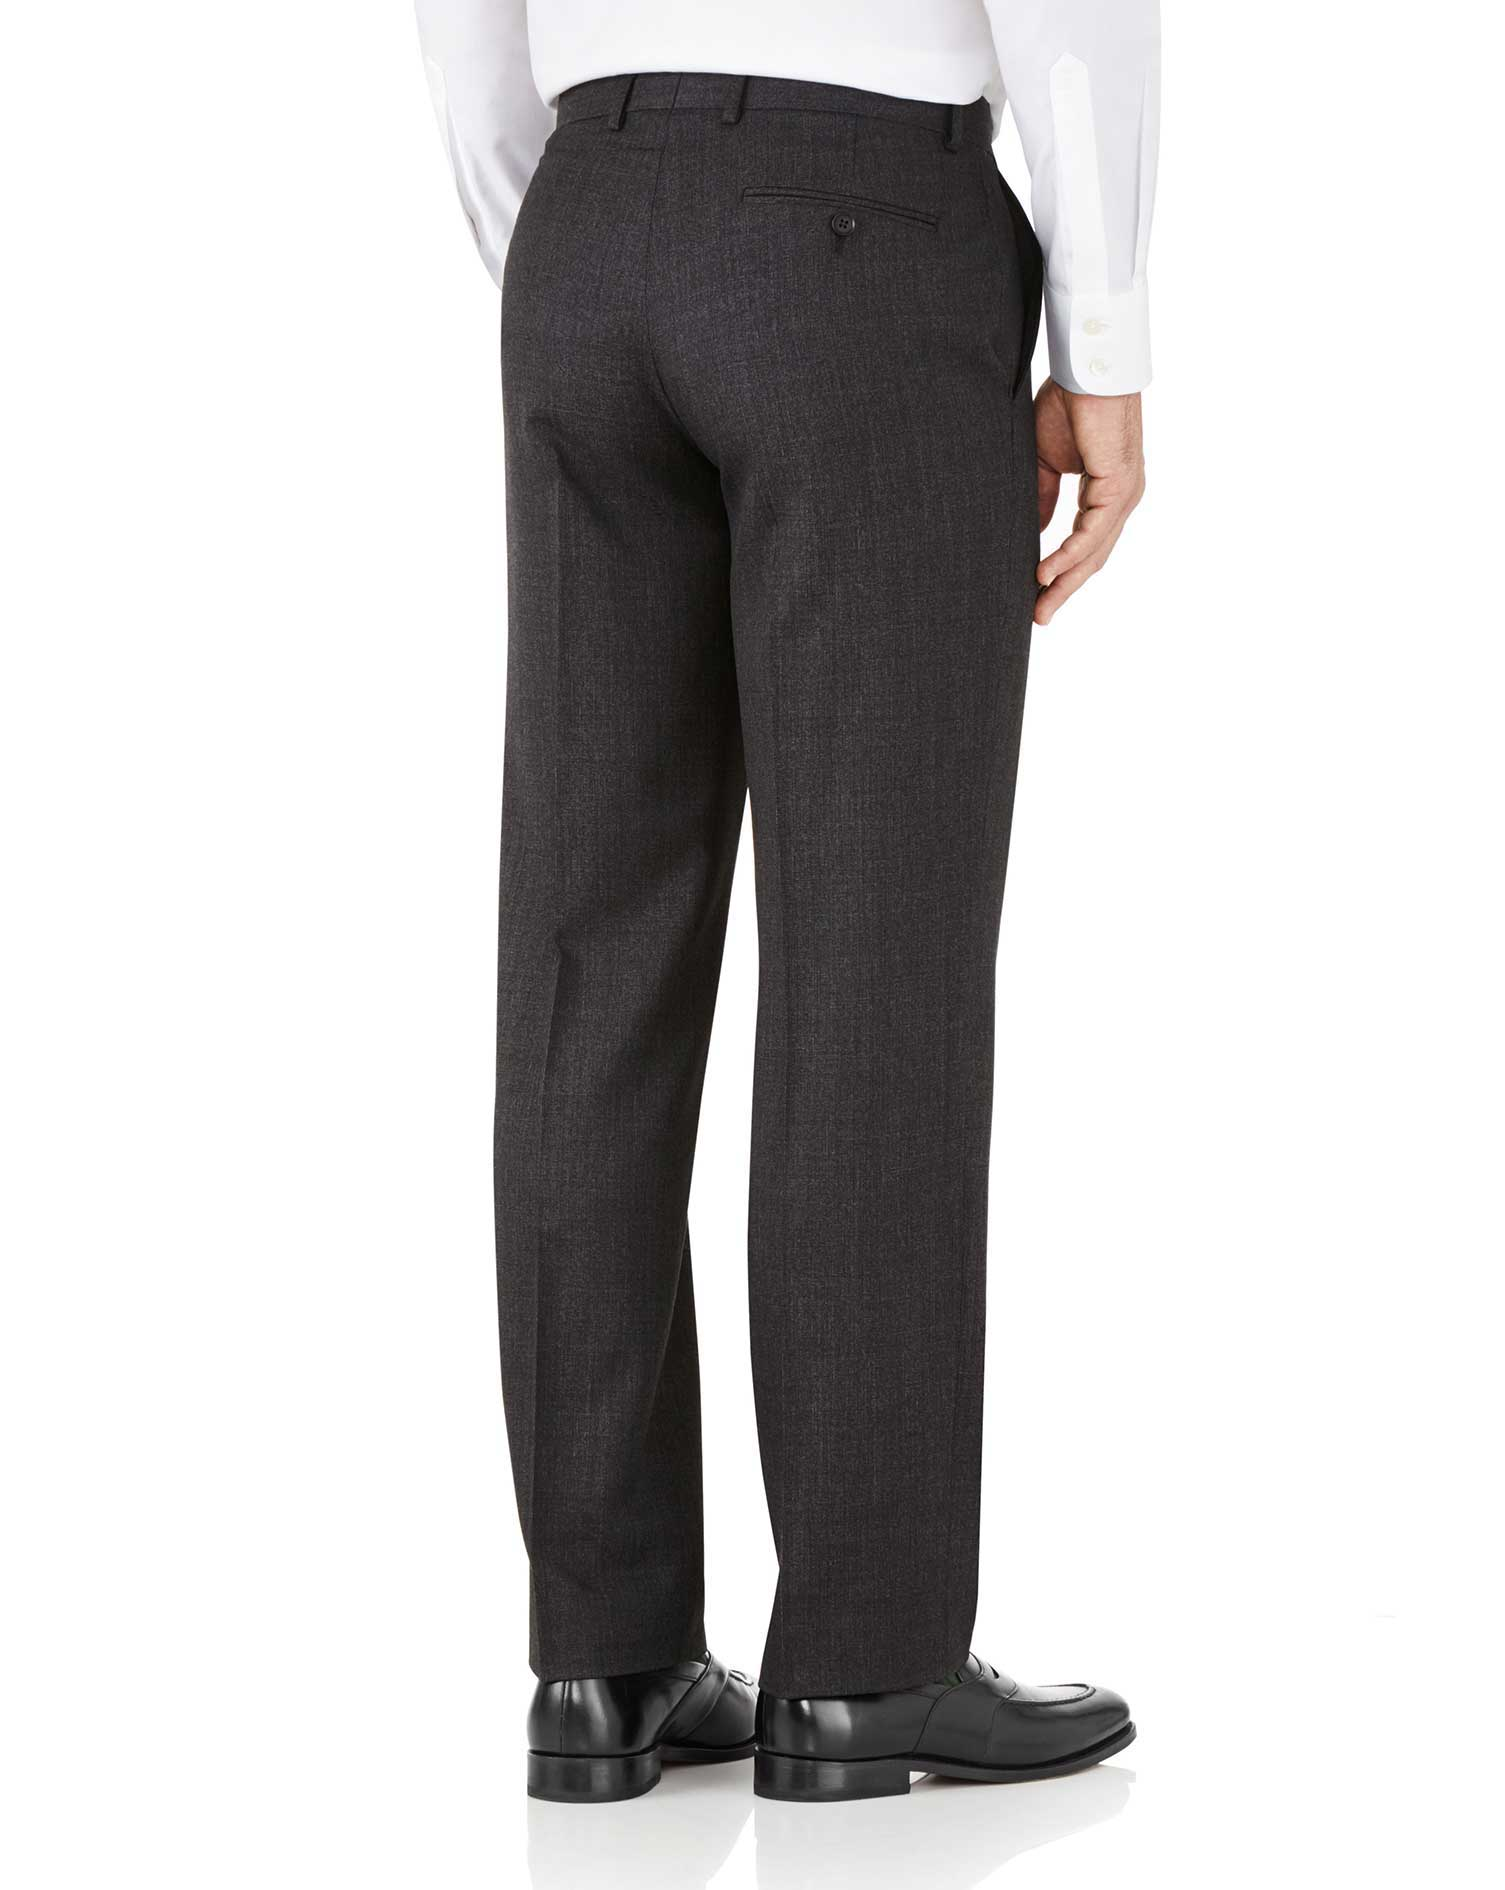 Charcoal classic fit hairline business suit trousers